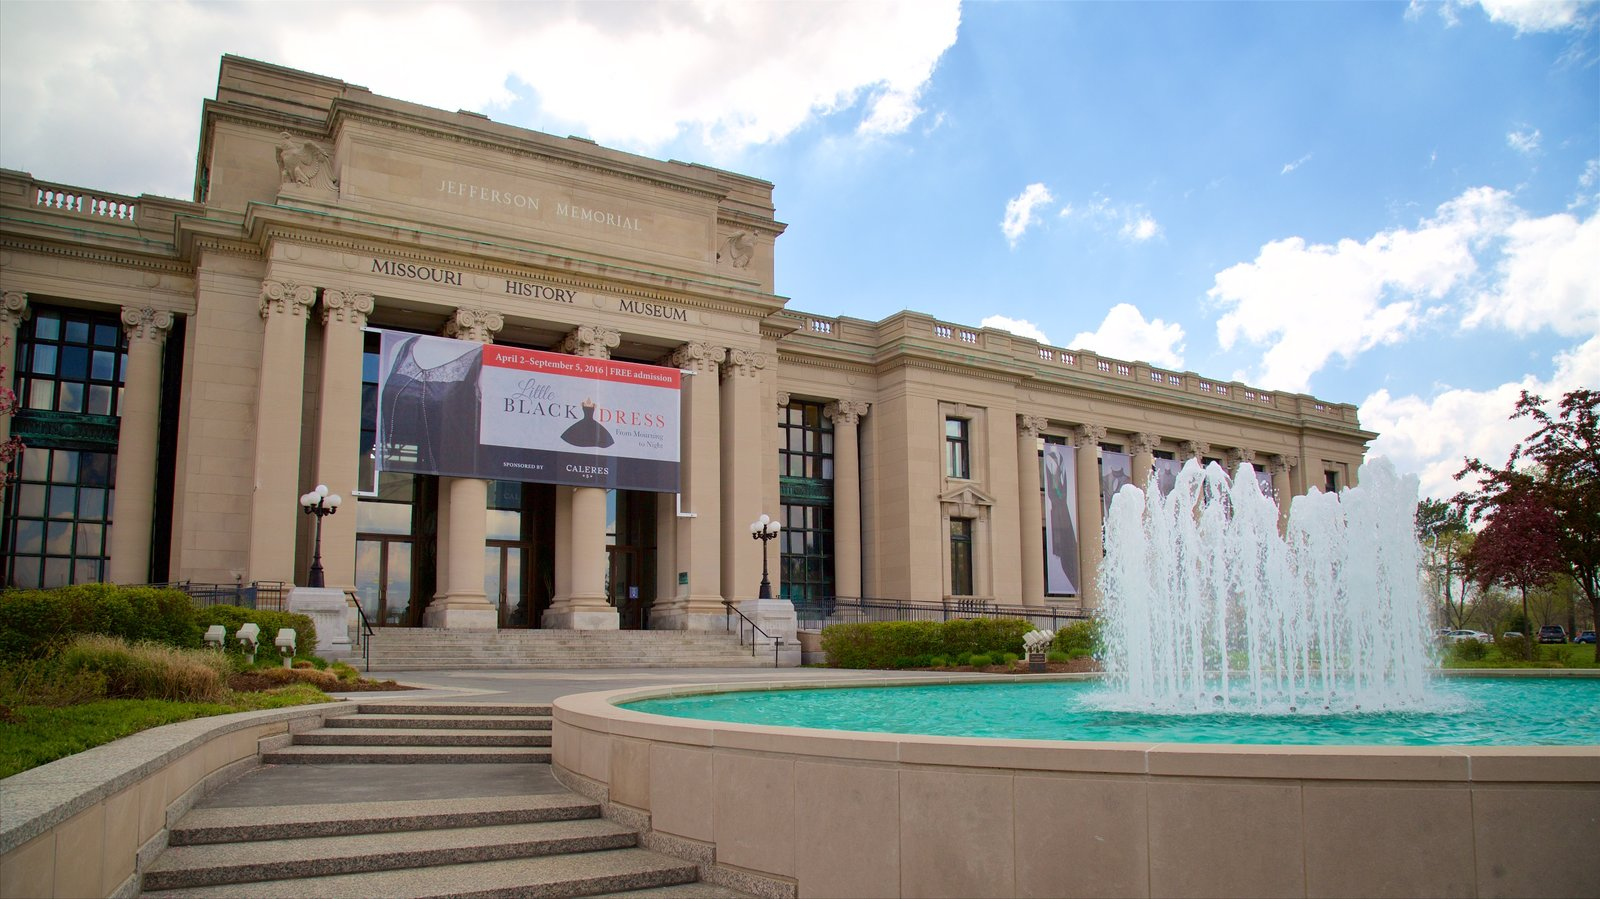 Missouri History Museum showing signage, heritage architecture and a fountain